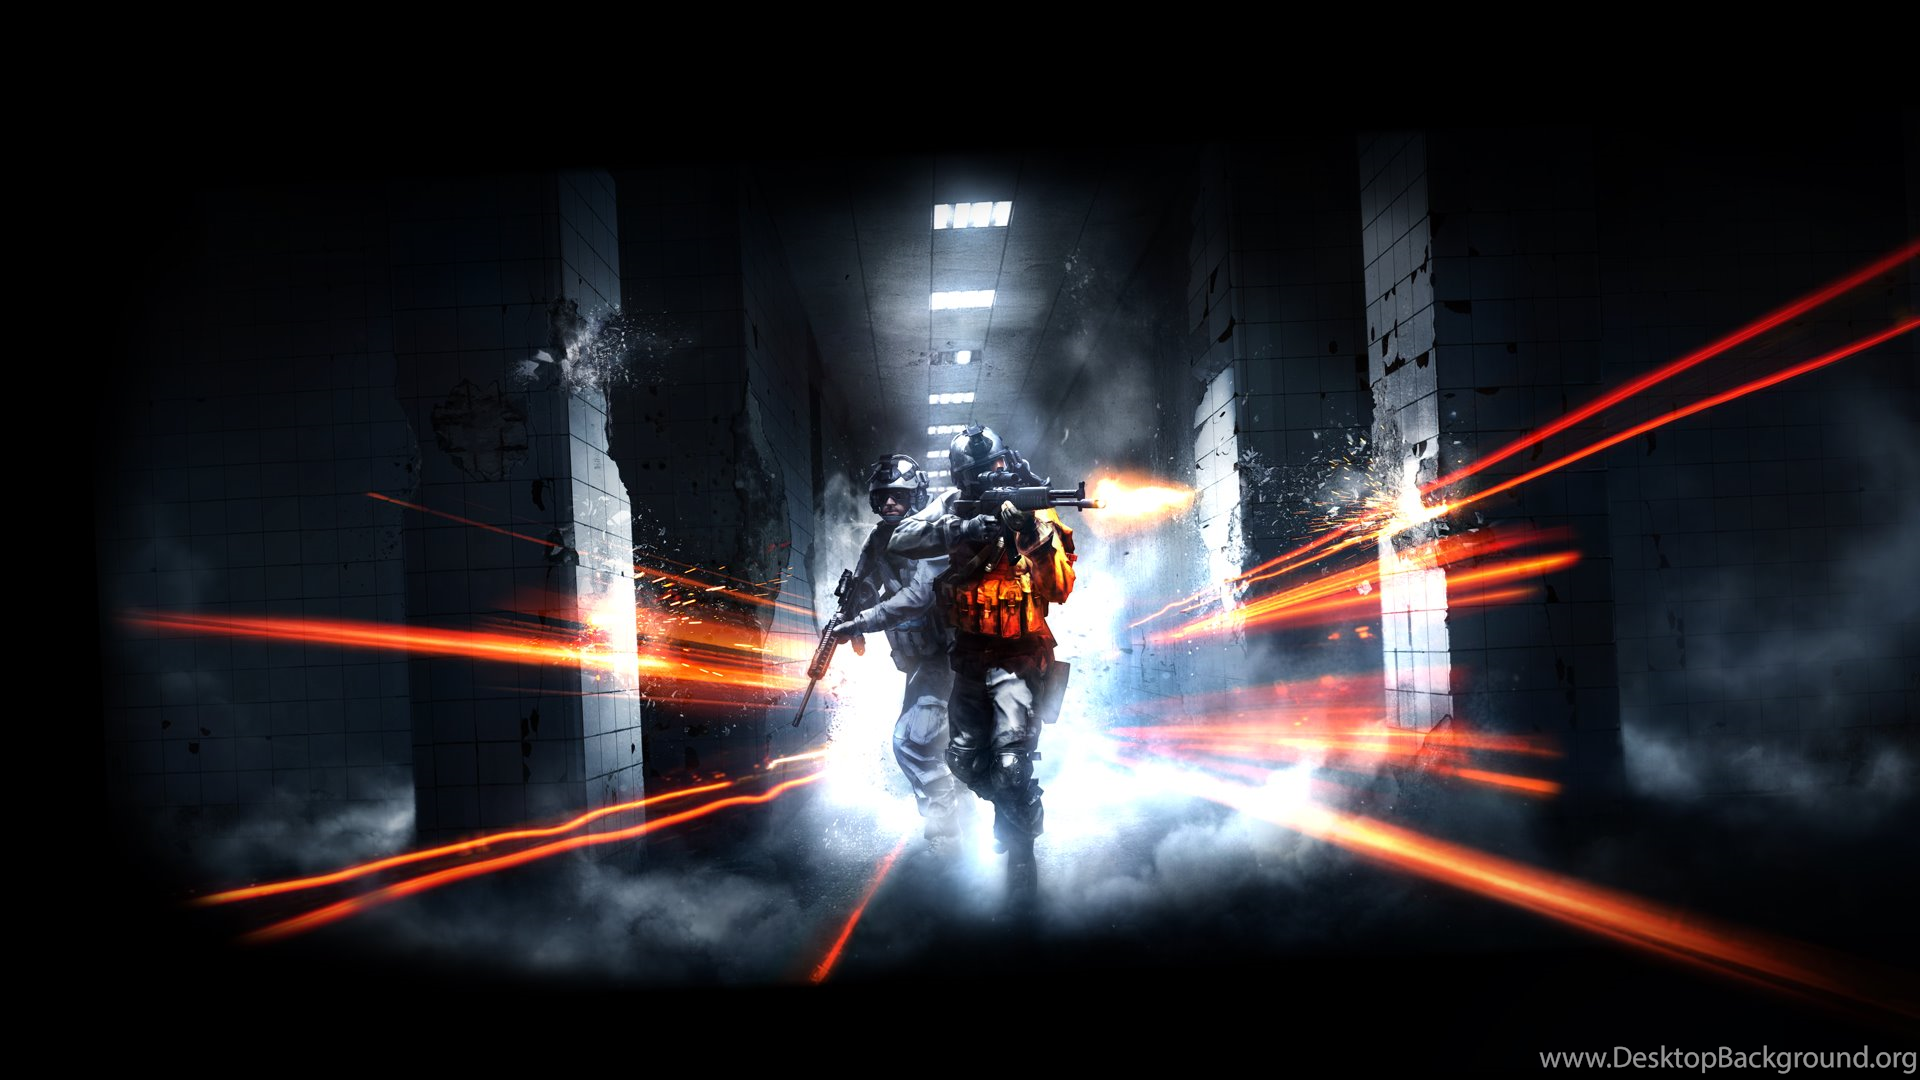 Wallpapers Nerf Battlefield France Com 1920x1080 Desktop Background